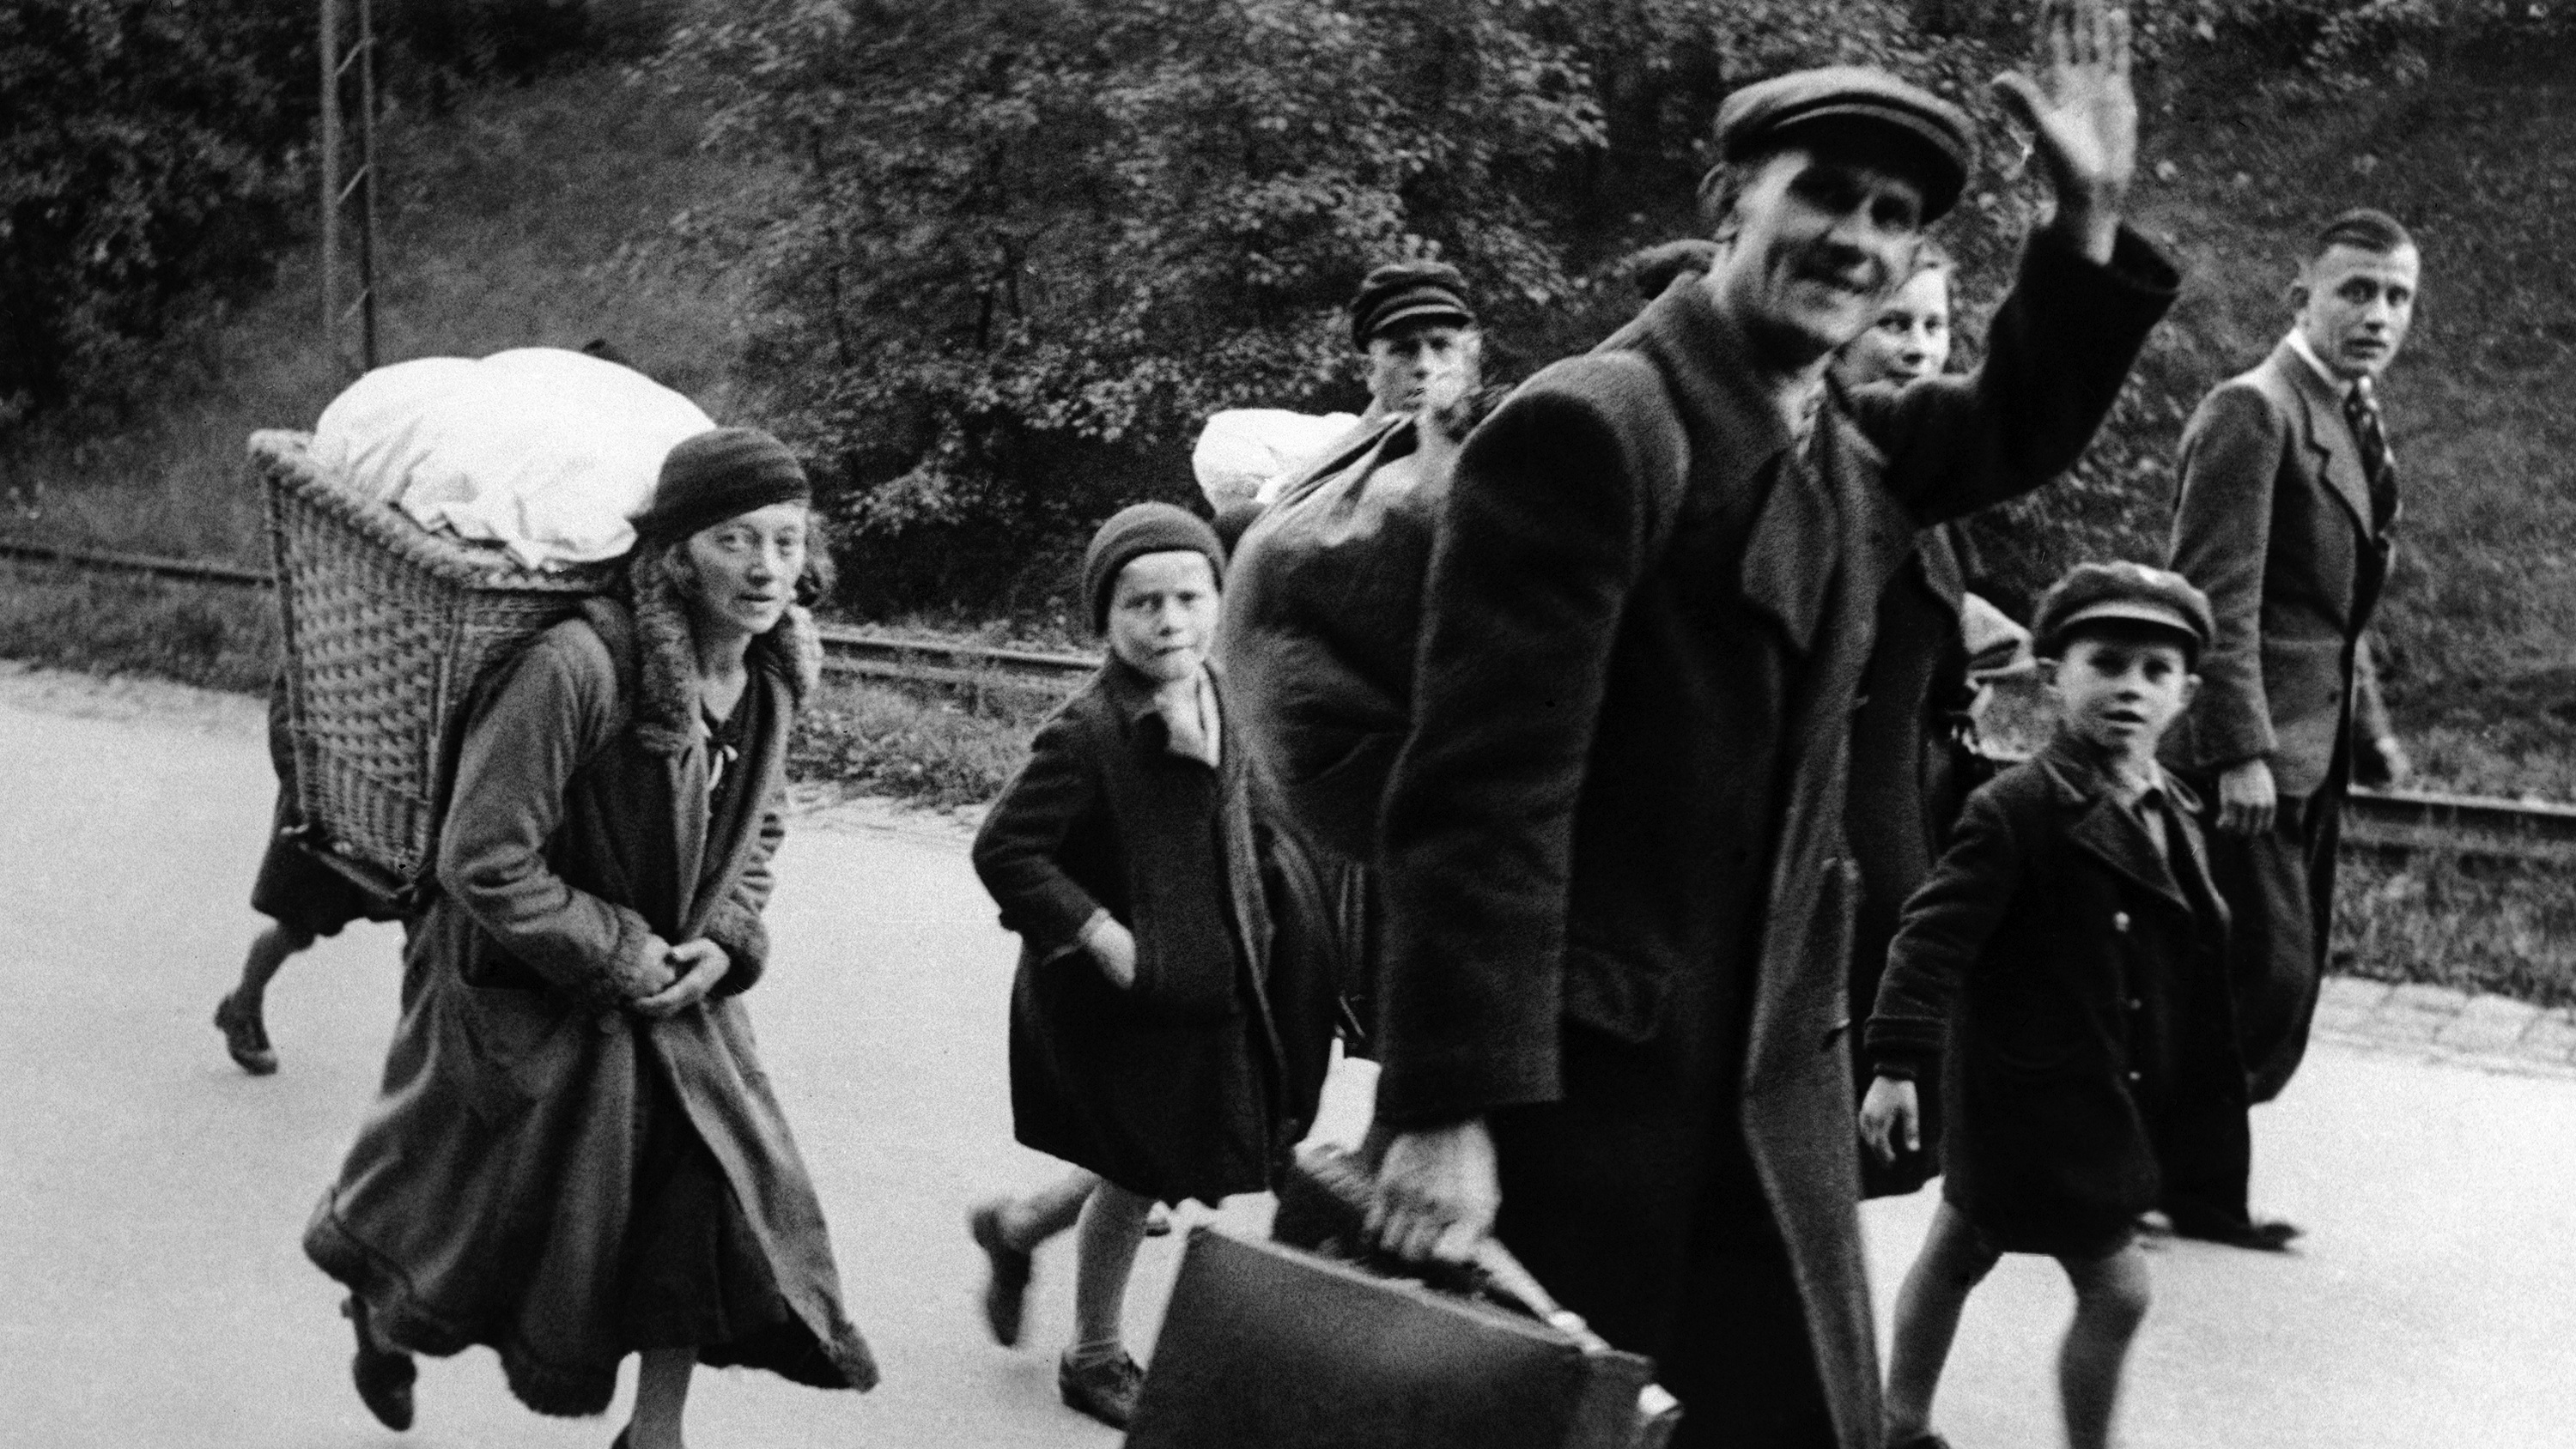 Sudeten German refugees just after crossing the Czech border into Germany at Oberklingenthal, on Sep. 17, 1938.